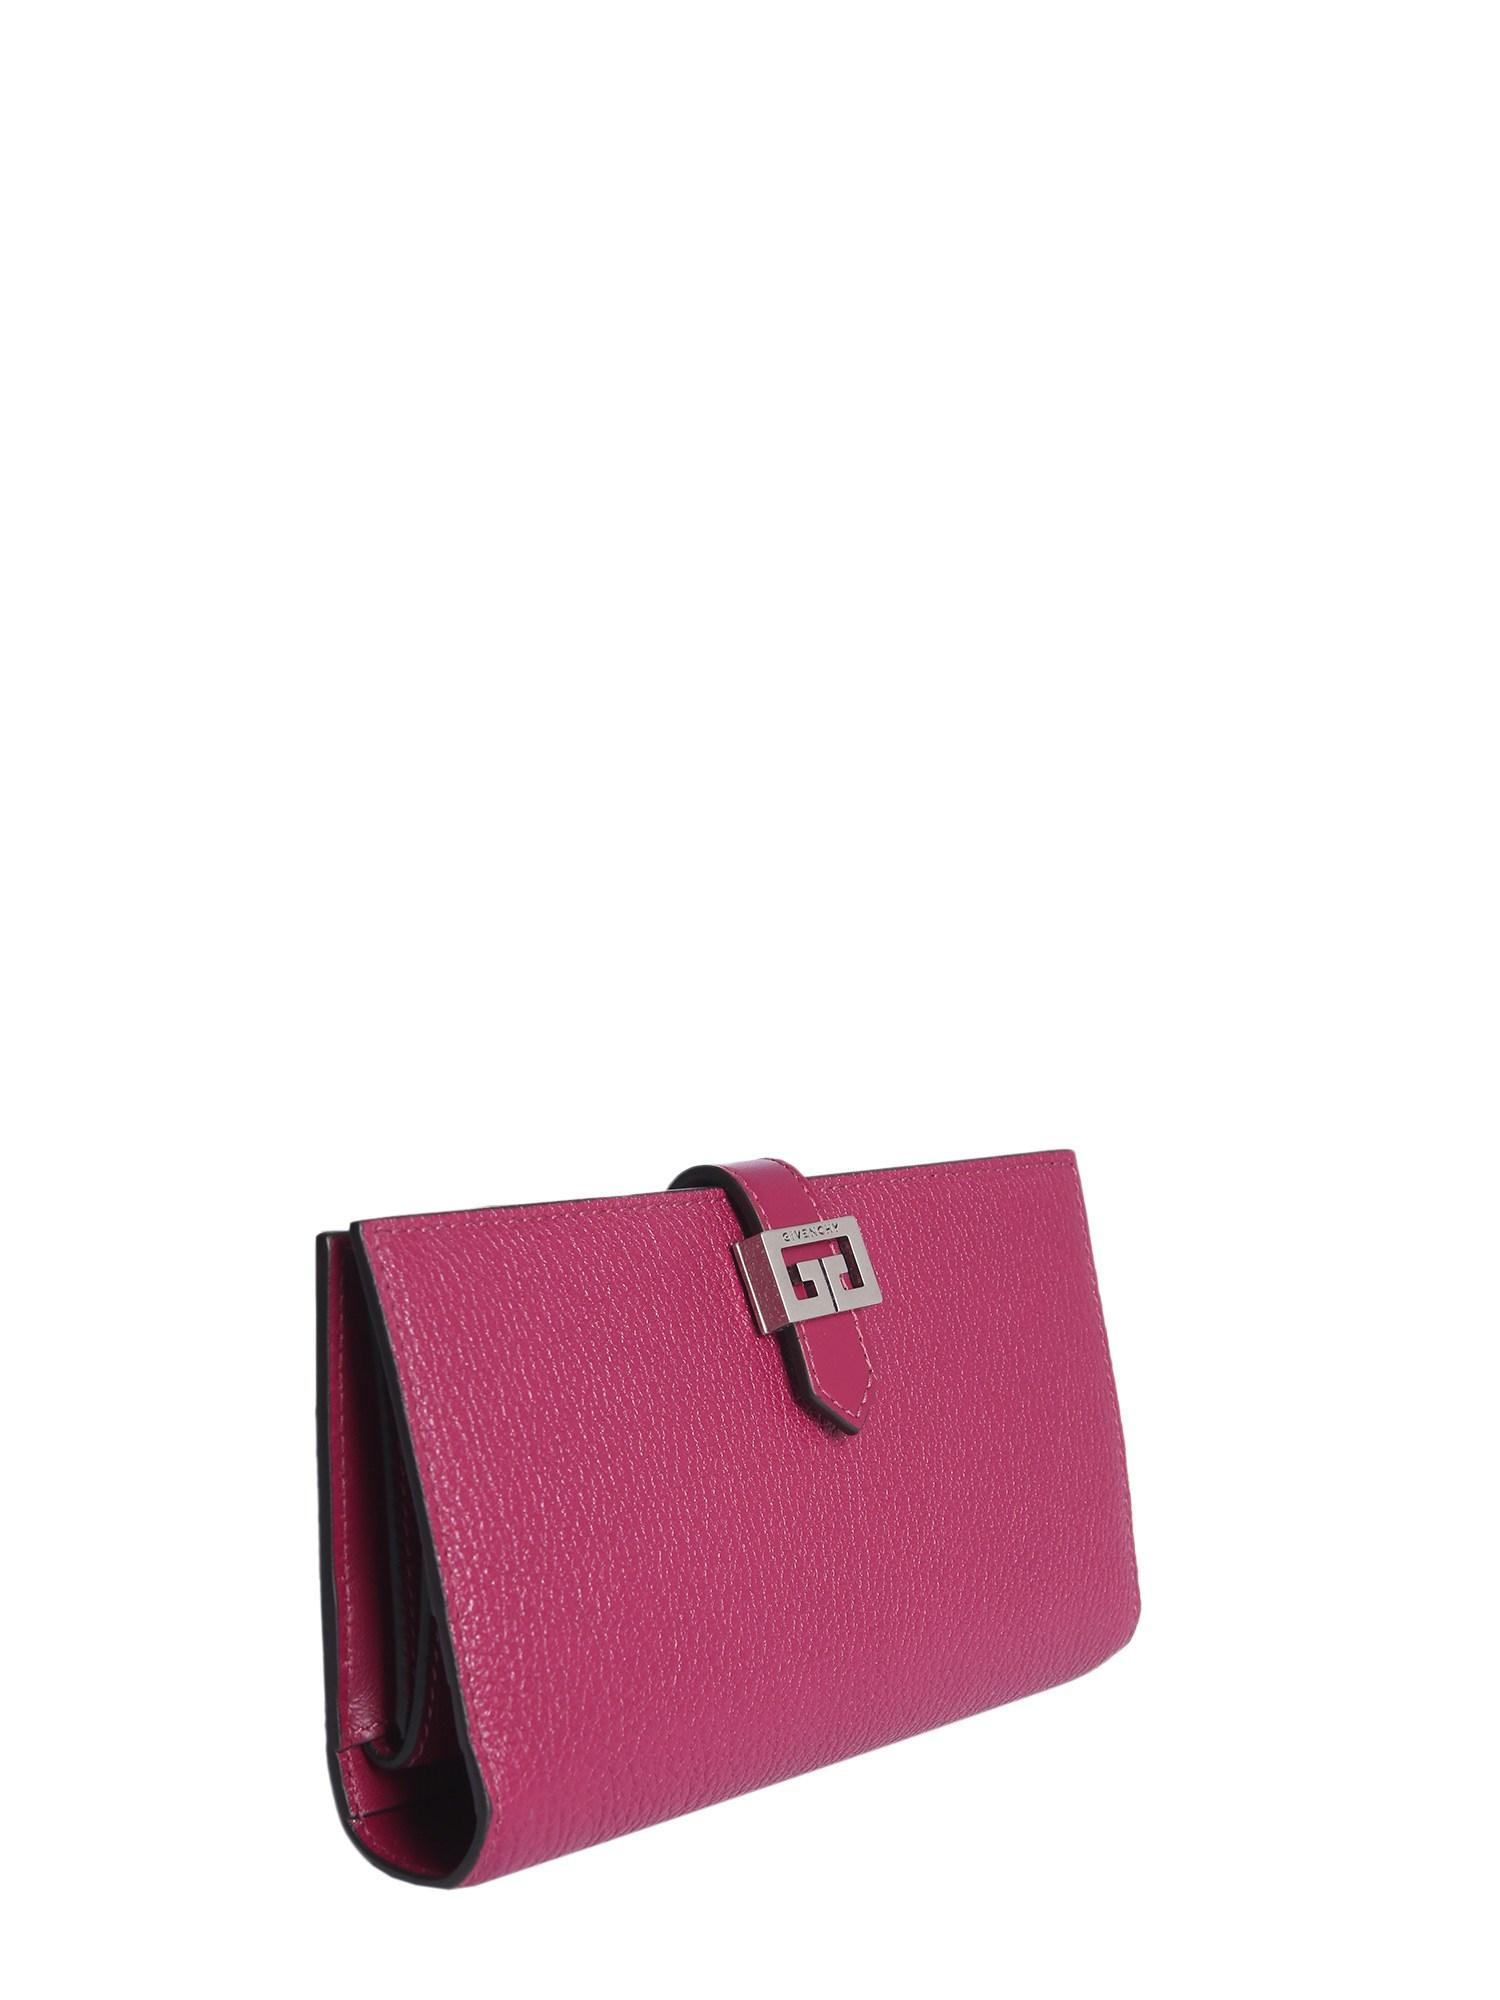 Givenchy Portafoglio Orchid In Pelle in Purple - Lyst 6959f51ee4b